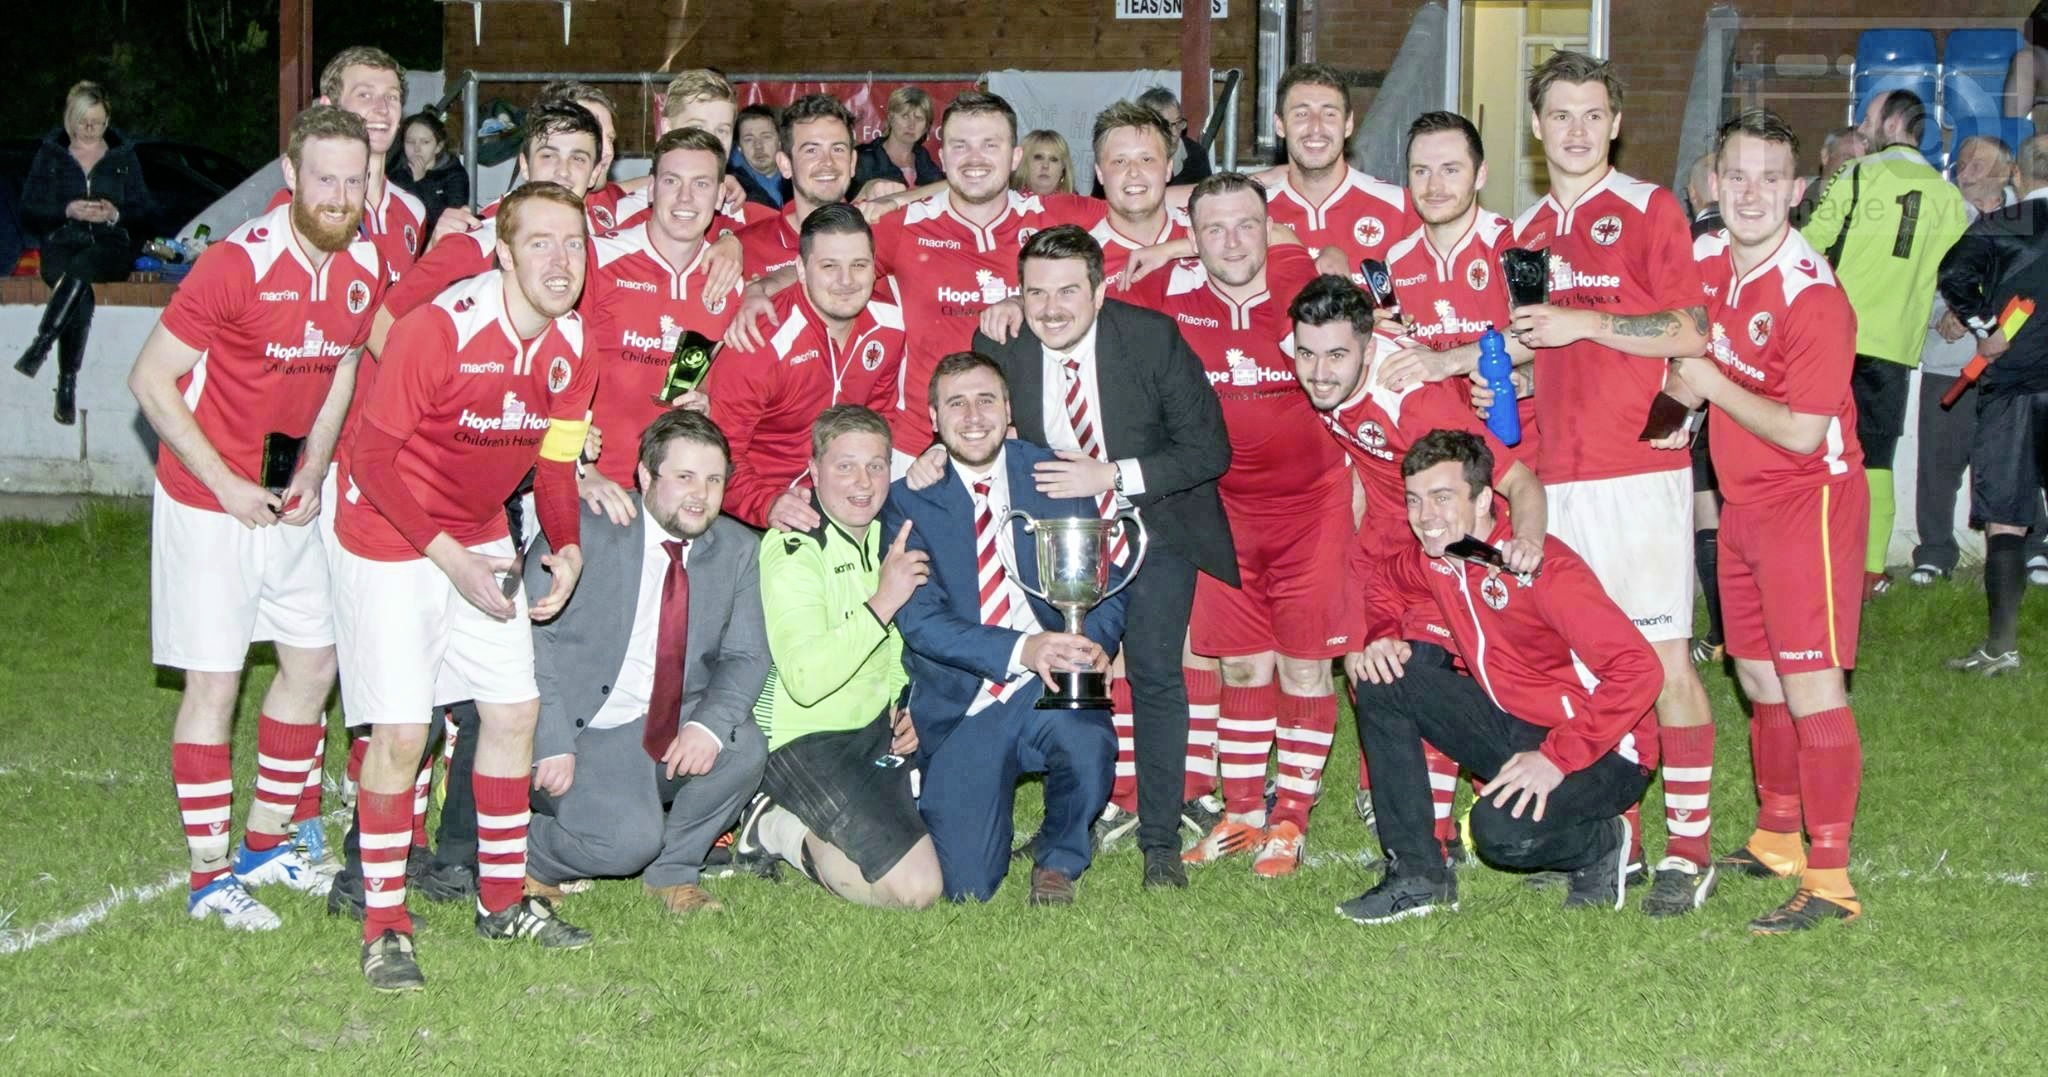 Llanymynech Football Club with the Consolation Cup in 2017.